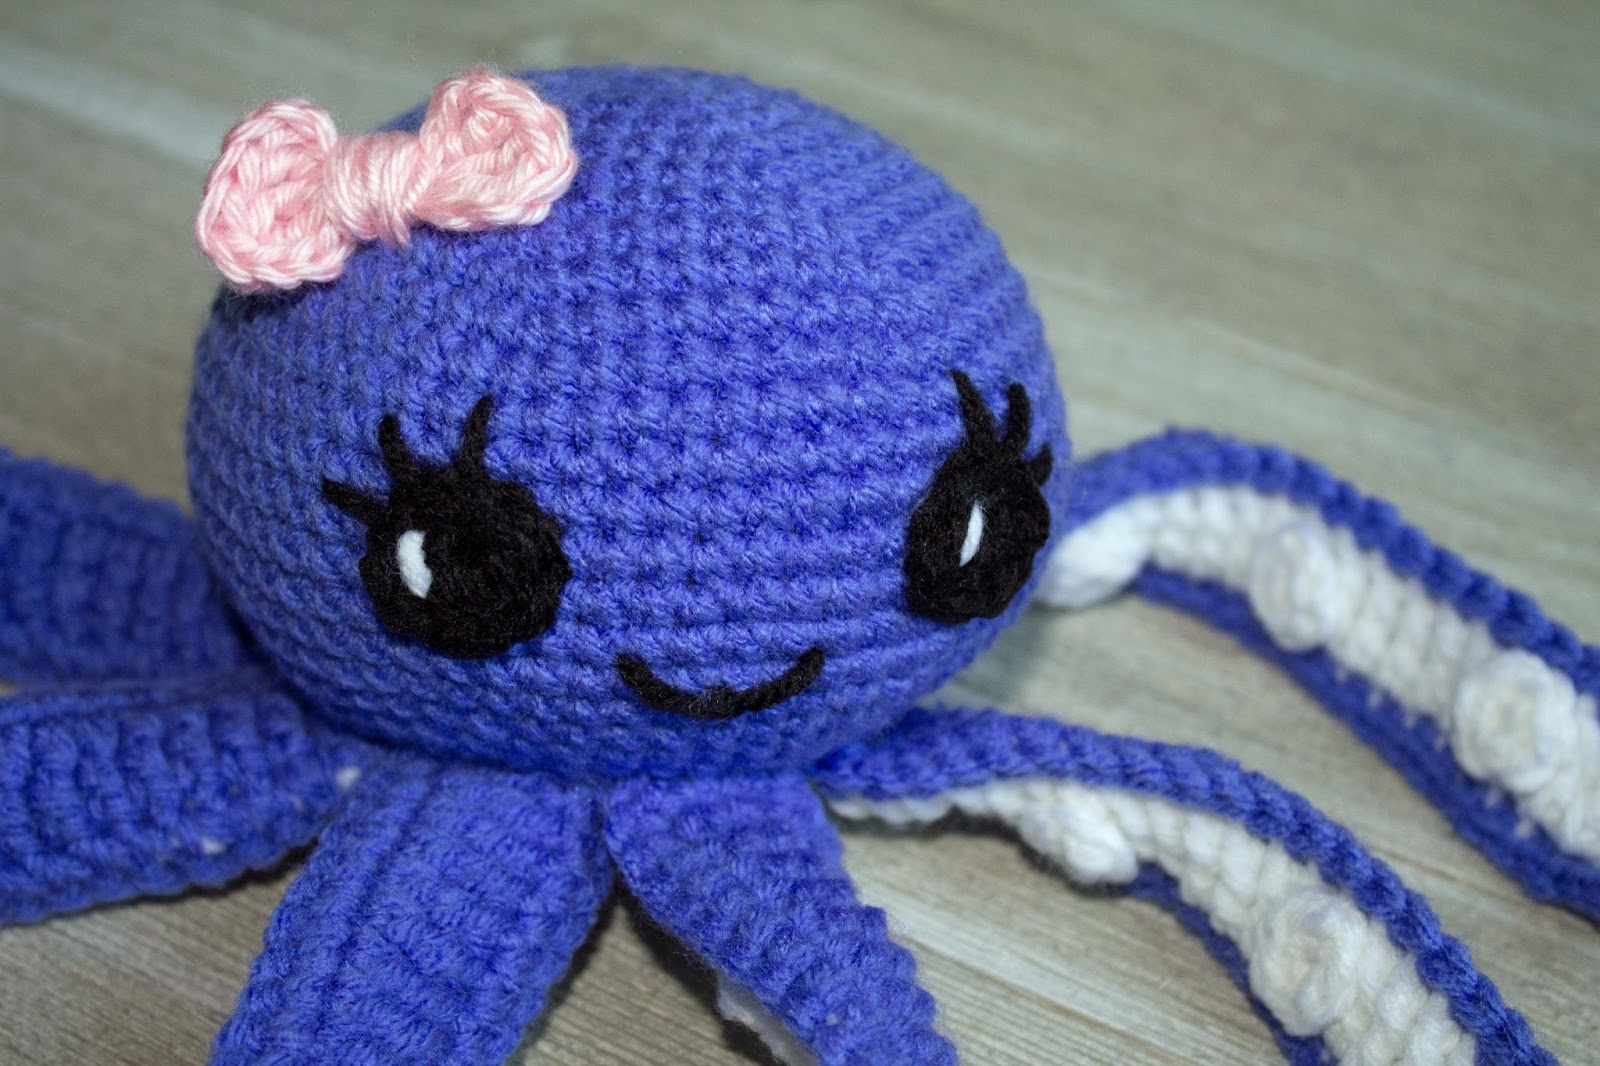 Free Pattern Crochet Octopus : Amigurumi Octopus Baby Toy Free Pattern - The Friendly Red Fox